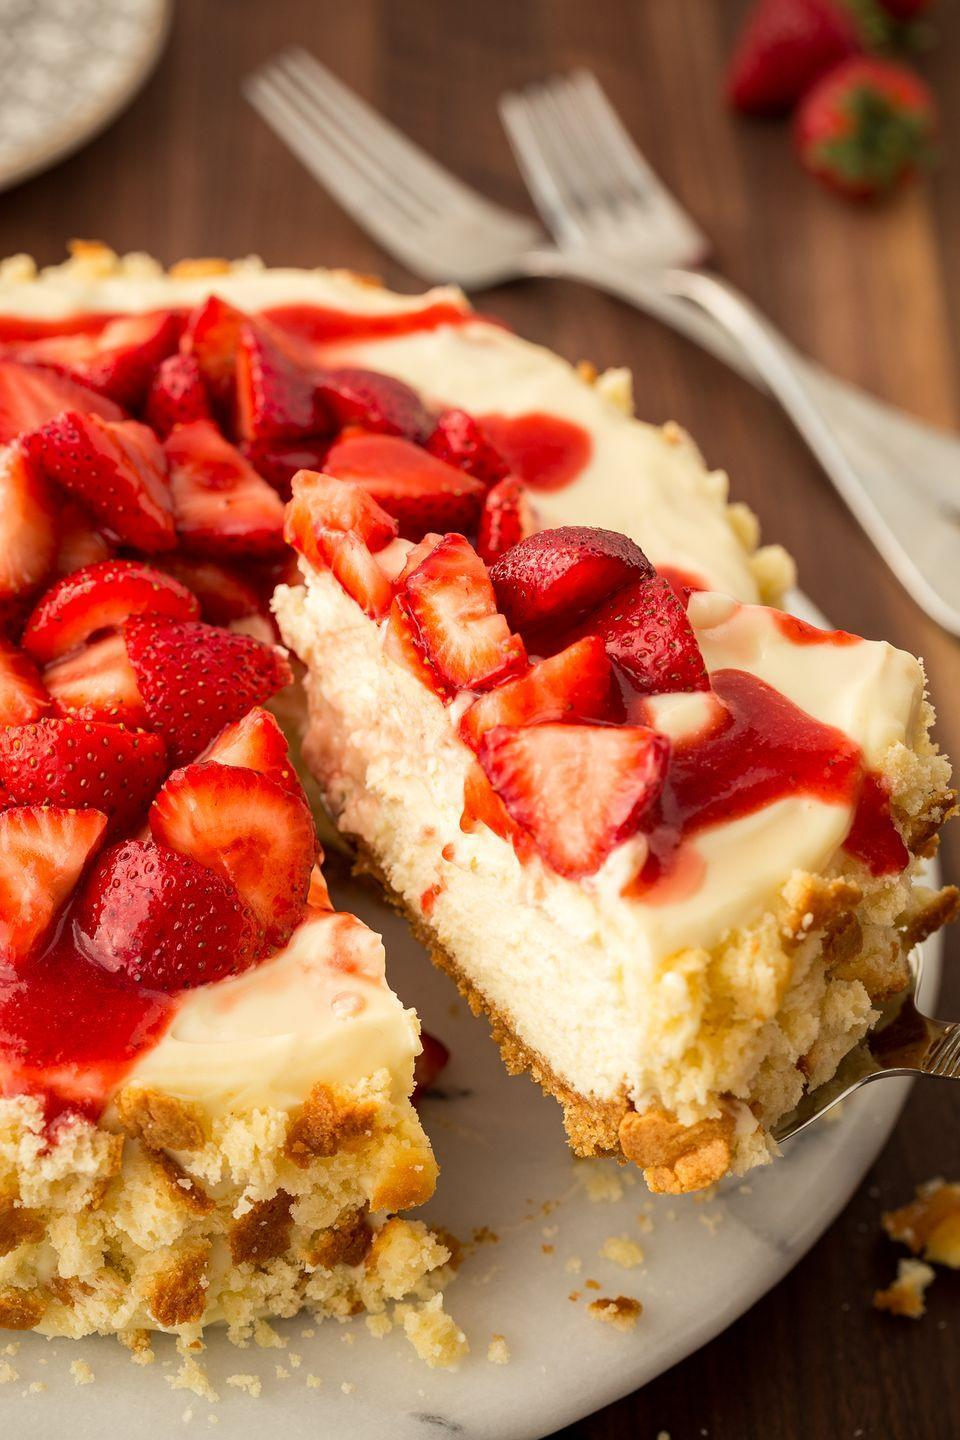 "<p>A cheesecake version makes the dessert even creamier.</p><p>Get the recipe from <a href=""https://www.delish.com/cooking/recipe-ideas/recipes/a47084/strawberry-shortcake-cheesecake-dessert-recipe/"" rel=""nofollow noopener"" target=""_blank"" data-ylk=""slk:Delish"" class=""link rapid-noclick-resp"">Delish</a>.</p>"